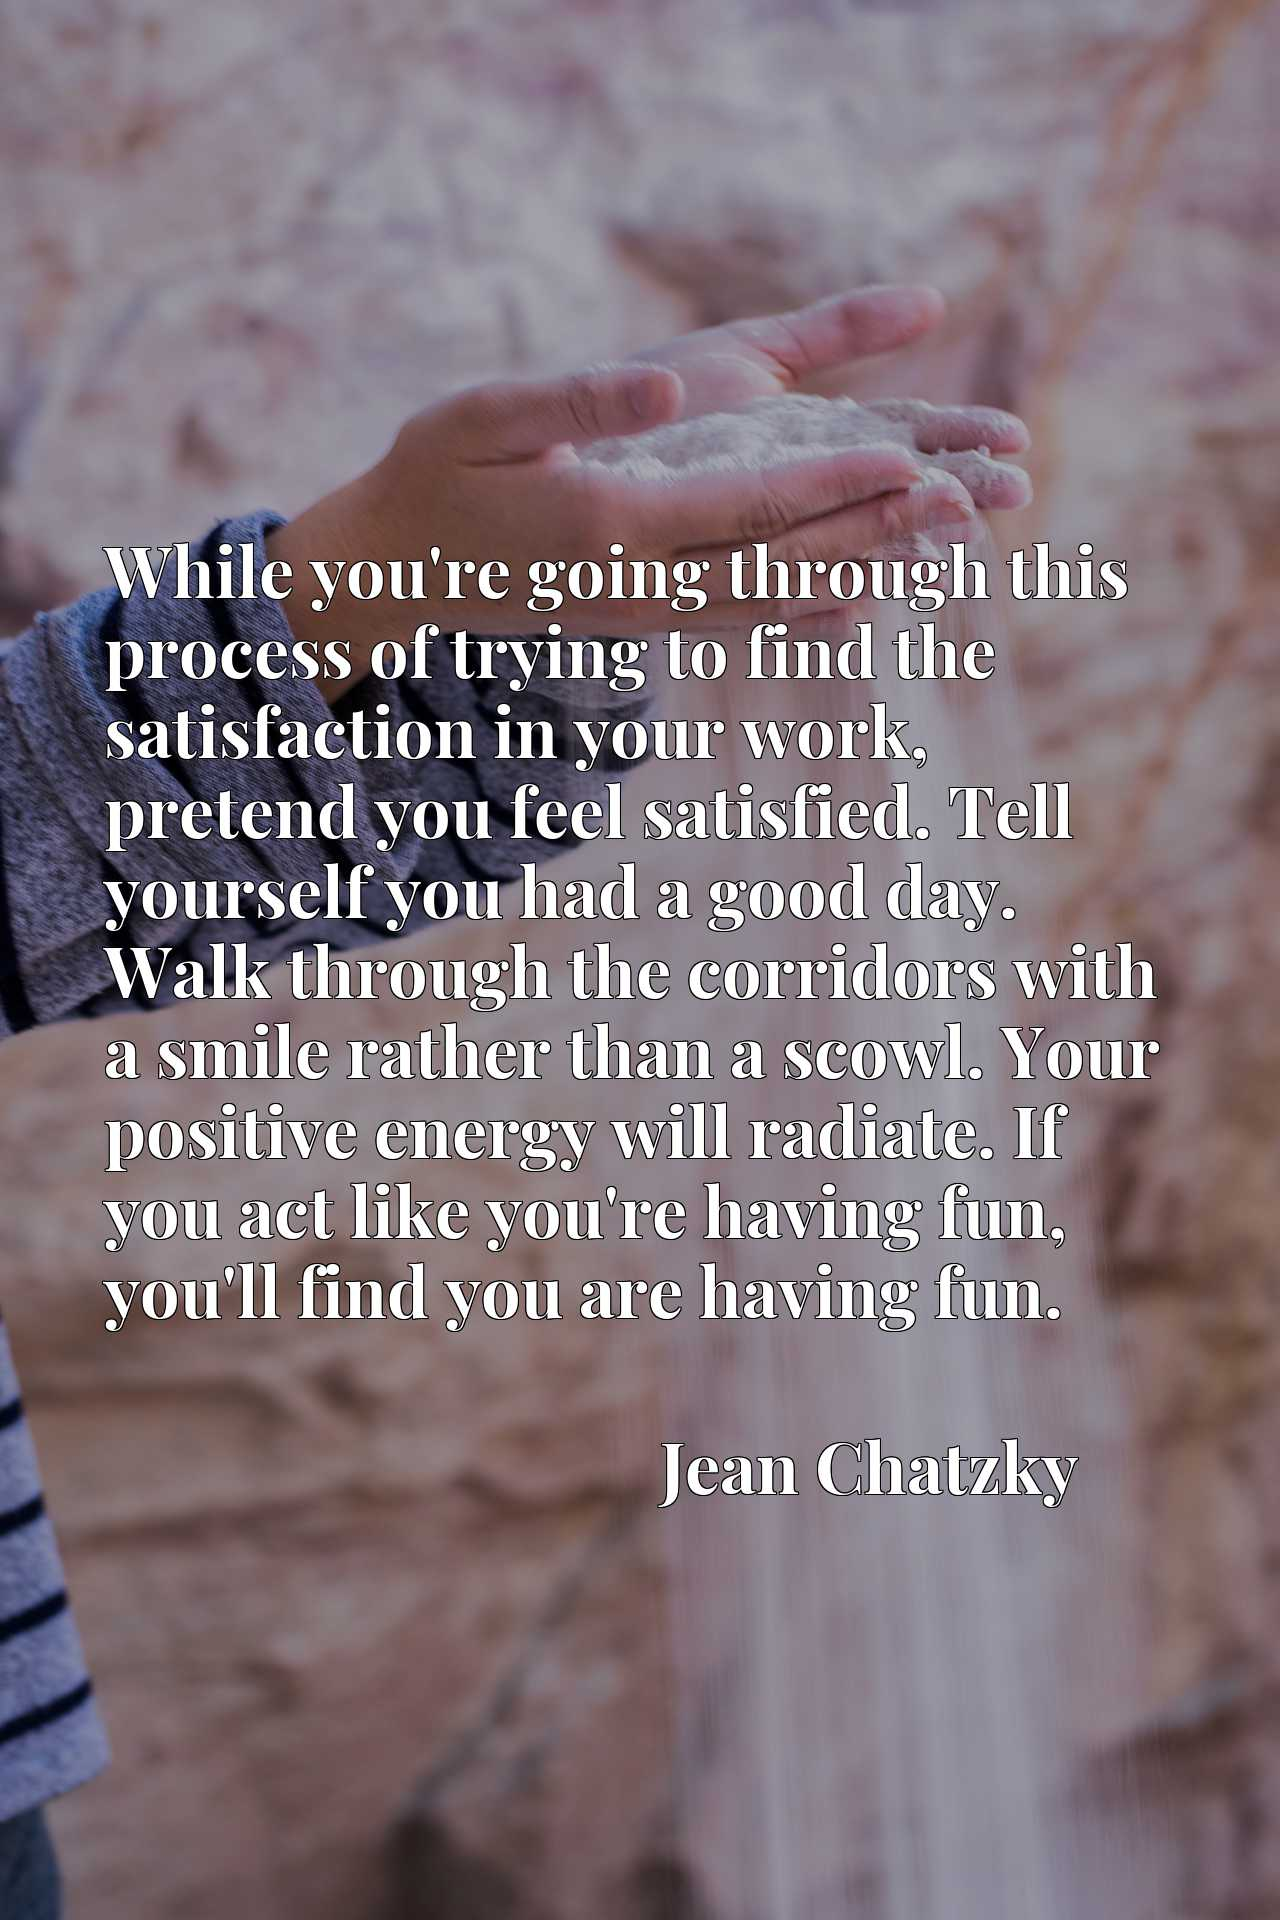 While you're going through this process of trying to find the satisfaction in your work, pretend you feel satisfied. Tell yourself you had a good day. Walk through the corridors with a smile rather than a scowl. Your positive energy will radiate. If you act like you're having fun, you'll find you are having fun.